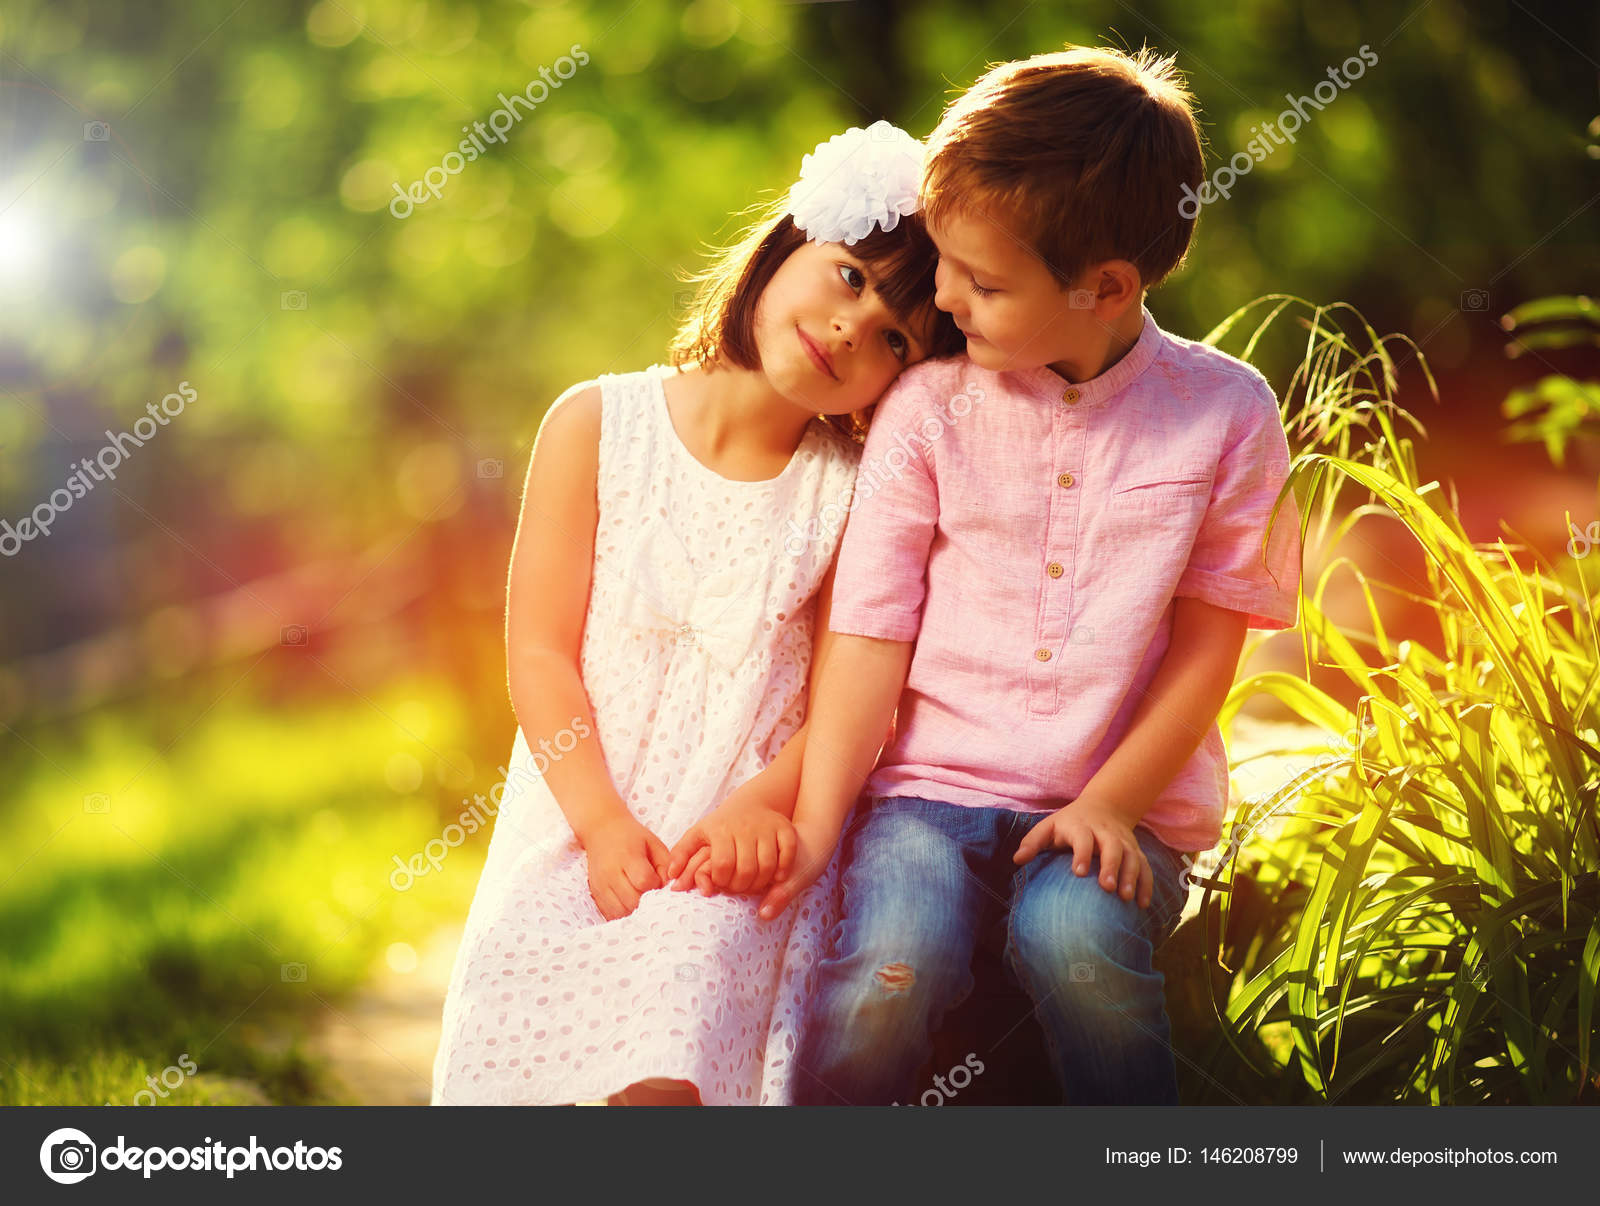 cute kids in love, sitting together in spring garden — stock photo